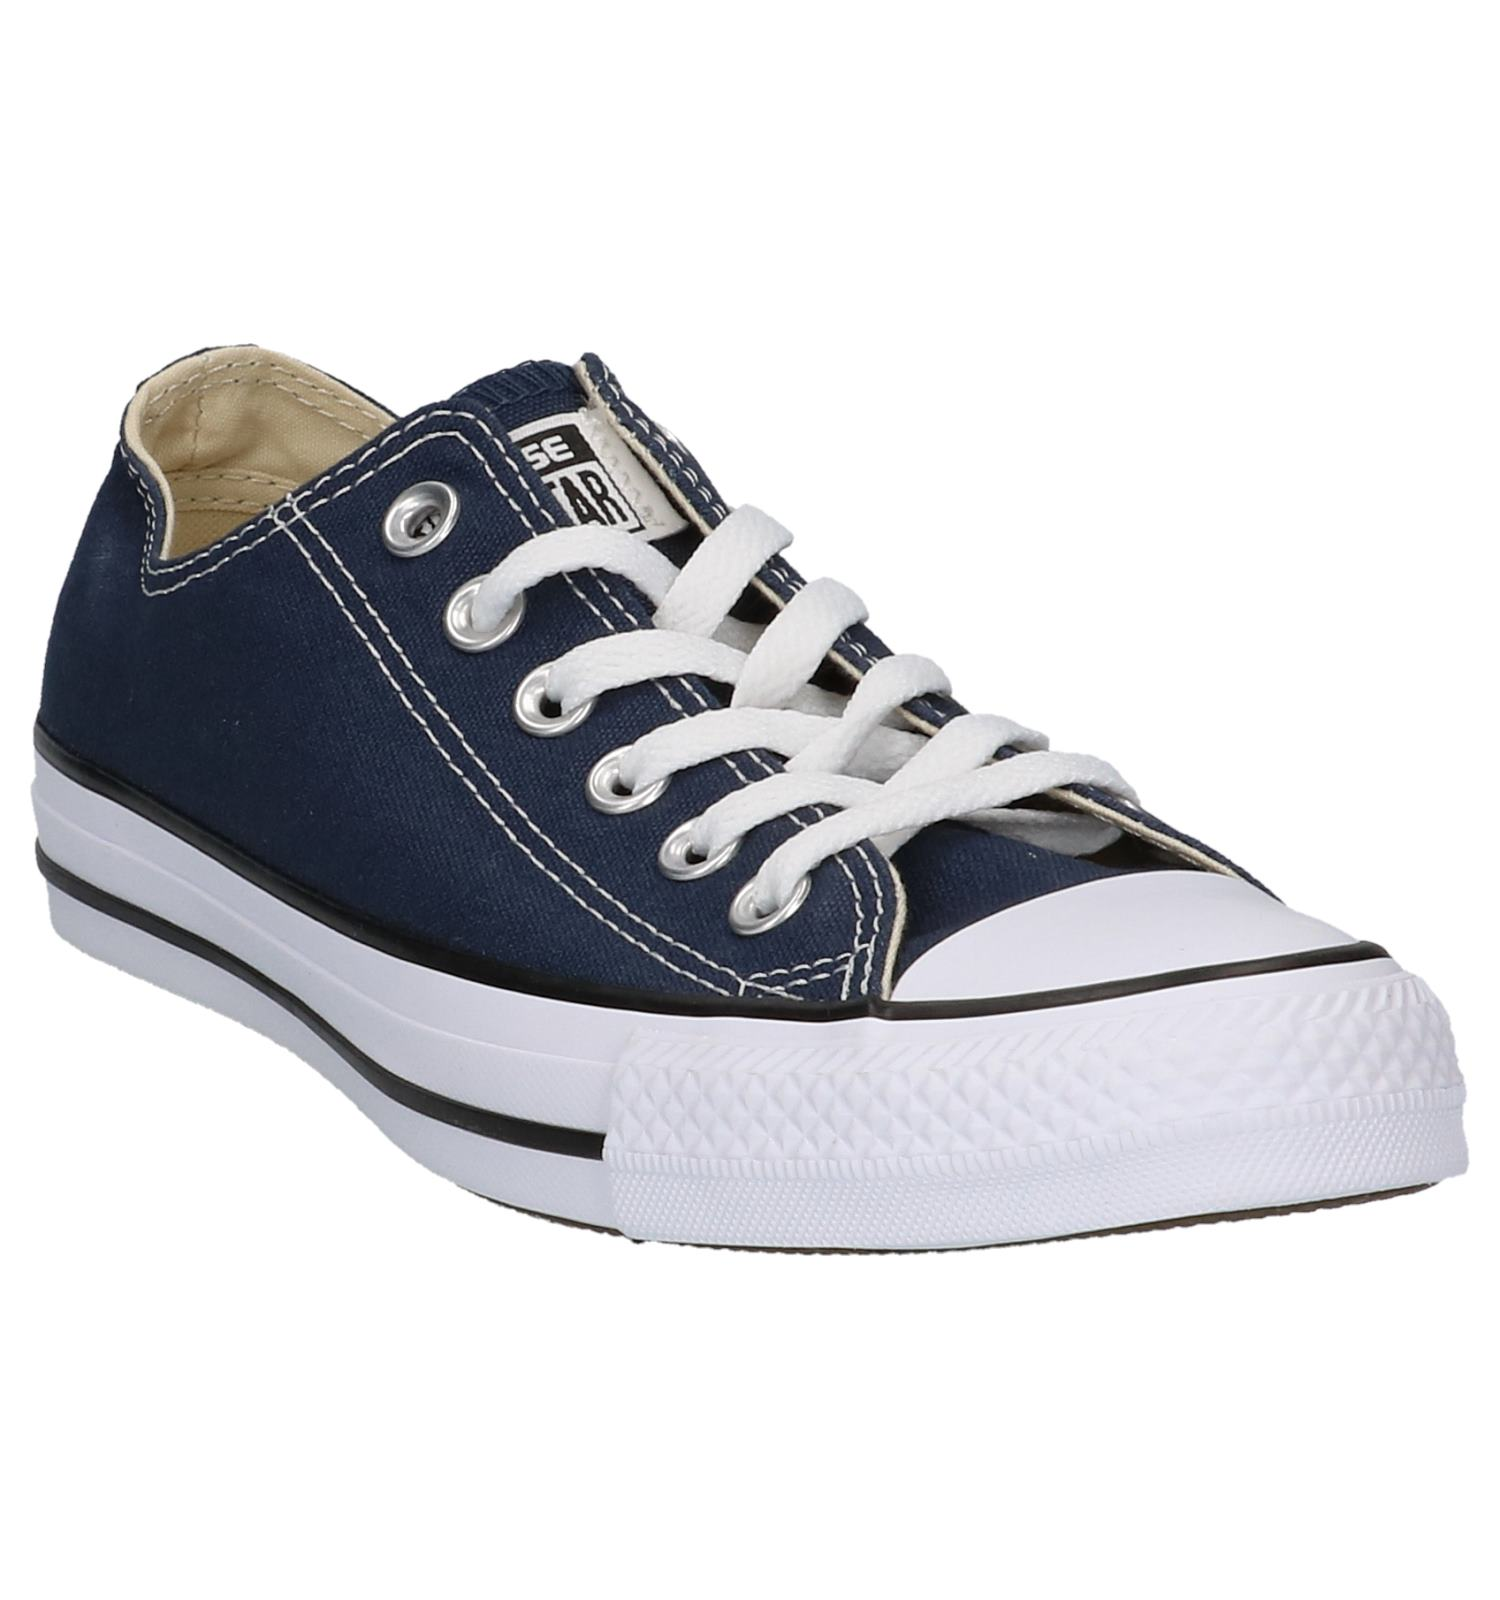 All Blauwe Sportieve Converse Star Sneakers Lage Core tChdrsQx